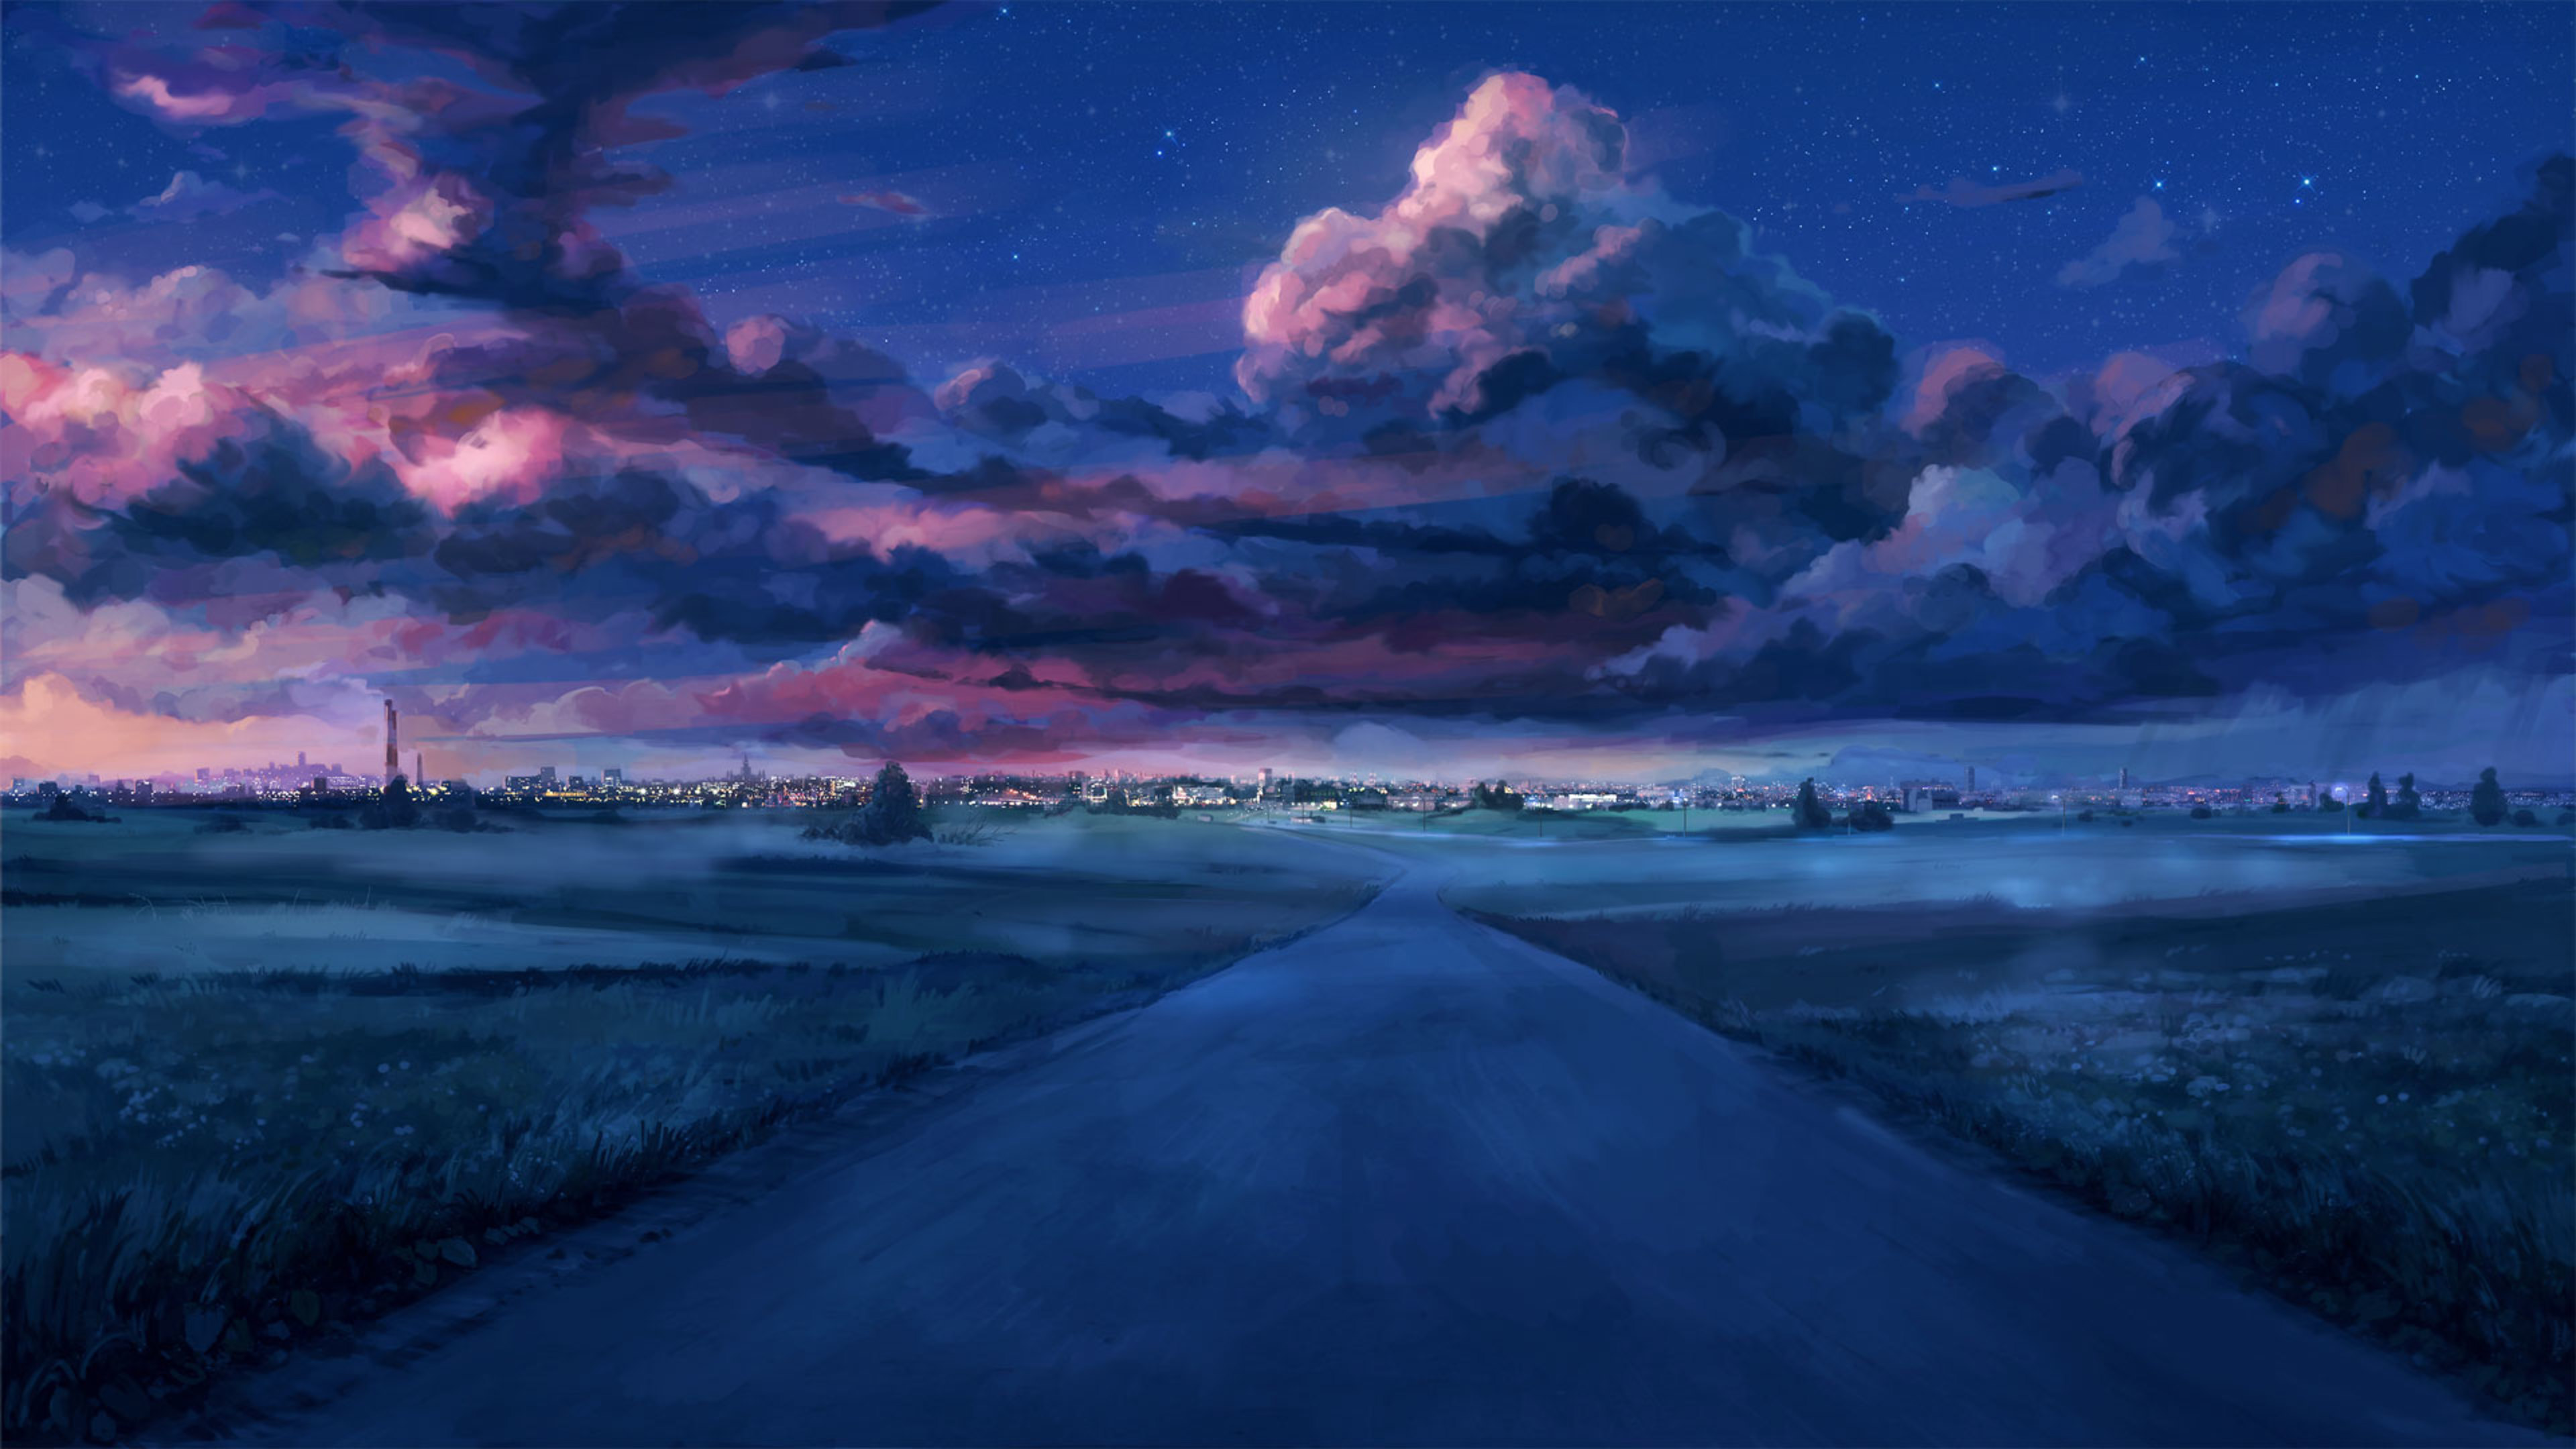 Anime 1080p, 2k, 4k, 5k hd wallpapers free download, these wallpapers are free download for pc, laptop, iphone, android phone and ipad desktop. Anime Night Scenery 4K Wallpaper - Best Wallpapers